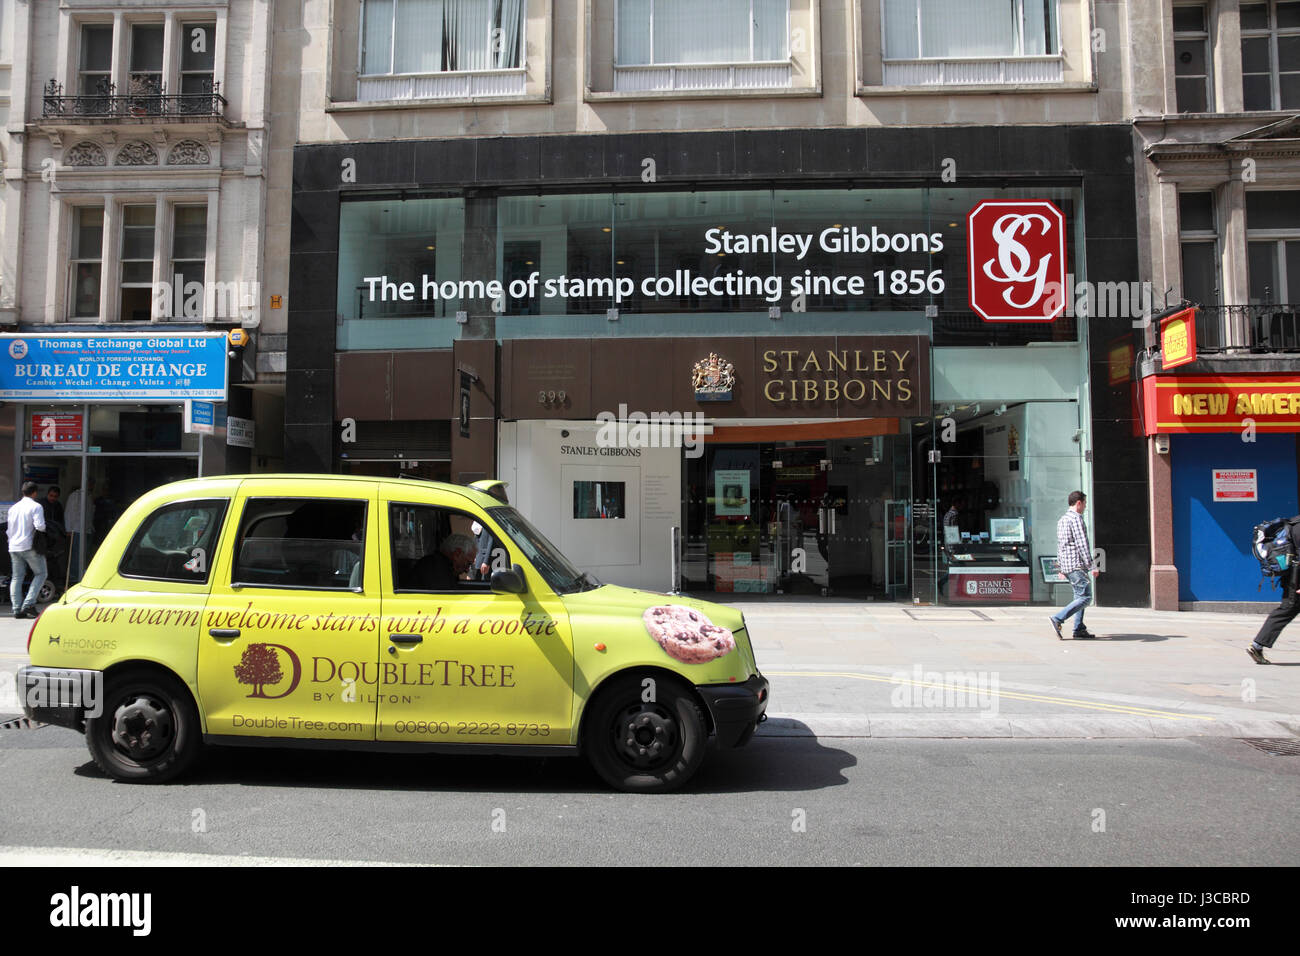 A taxi cab advertising Hilton DoubleTree hotels outside Stanley Gibbons on the Strand, London - Stock Image